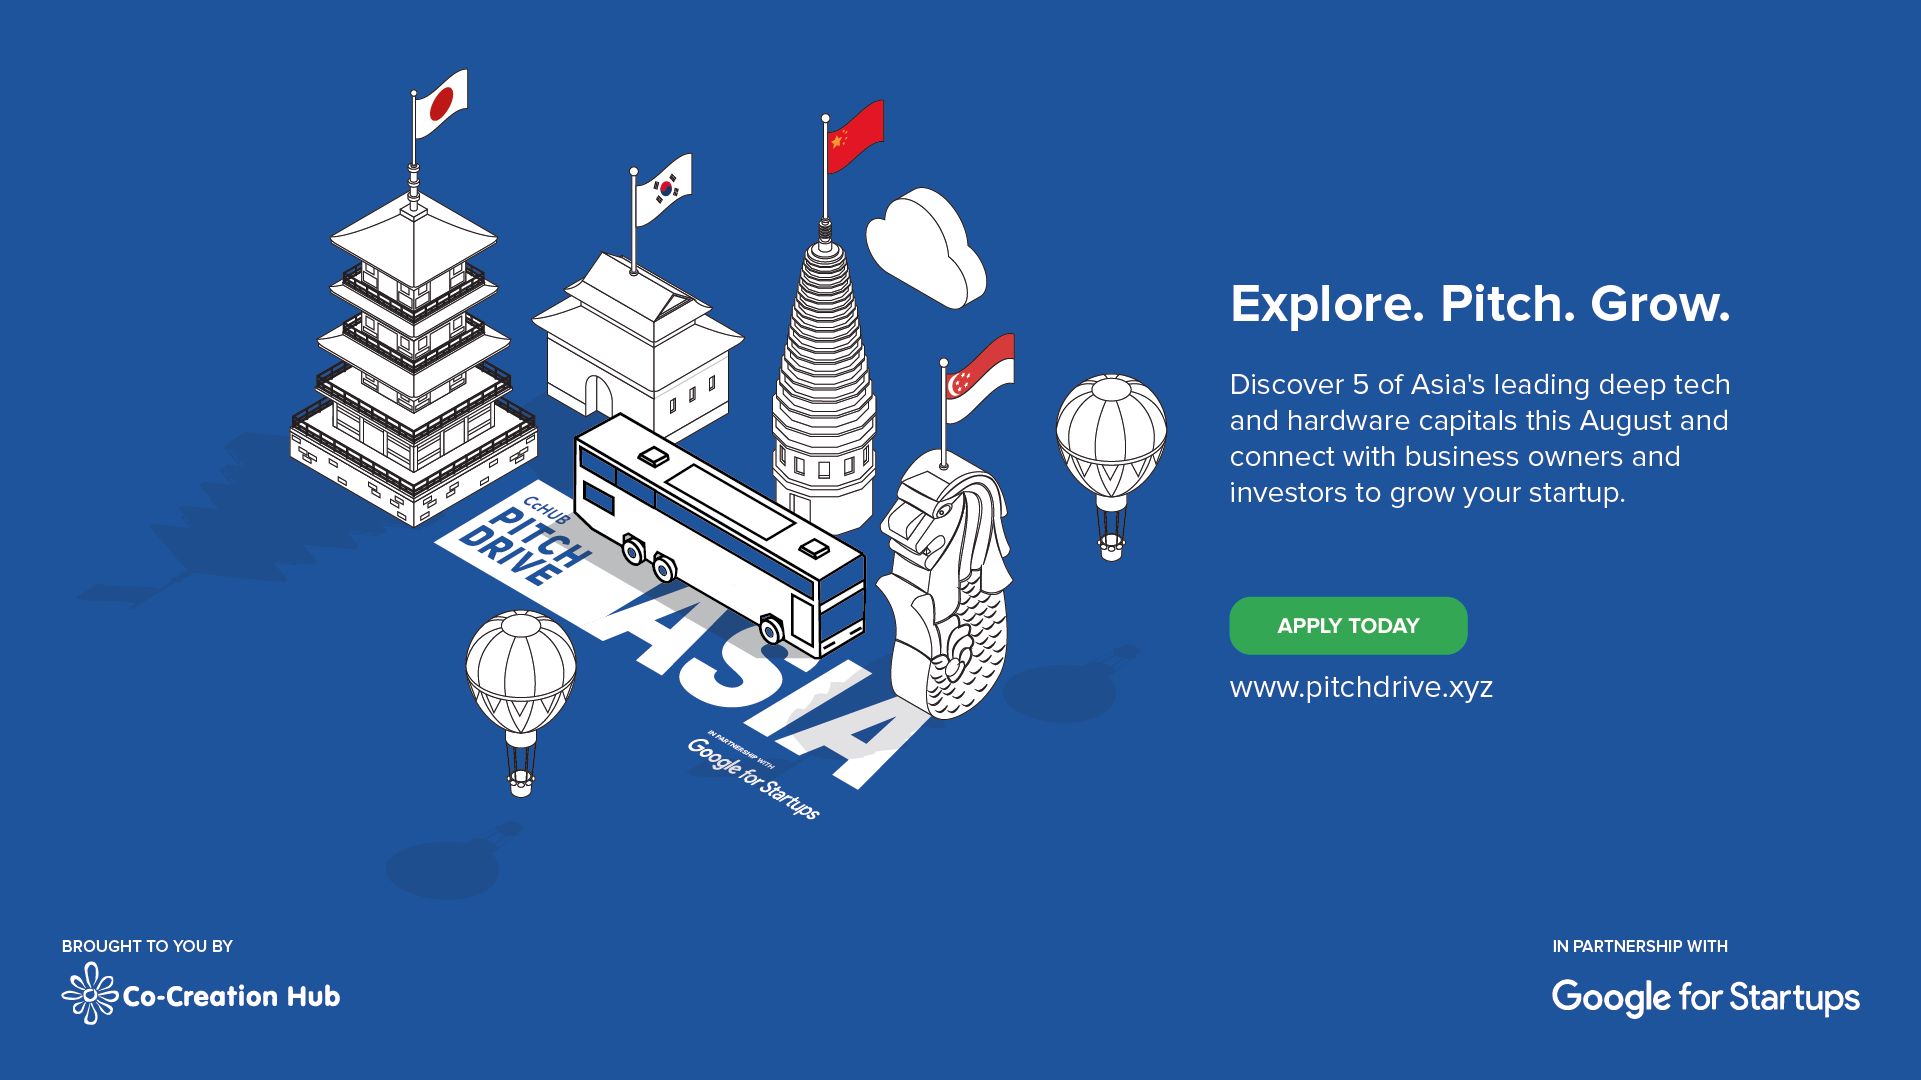 Join CcHUB and Google for Startups on a Deep Tech Tour of Asia